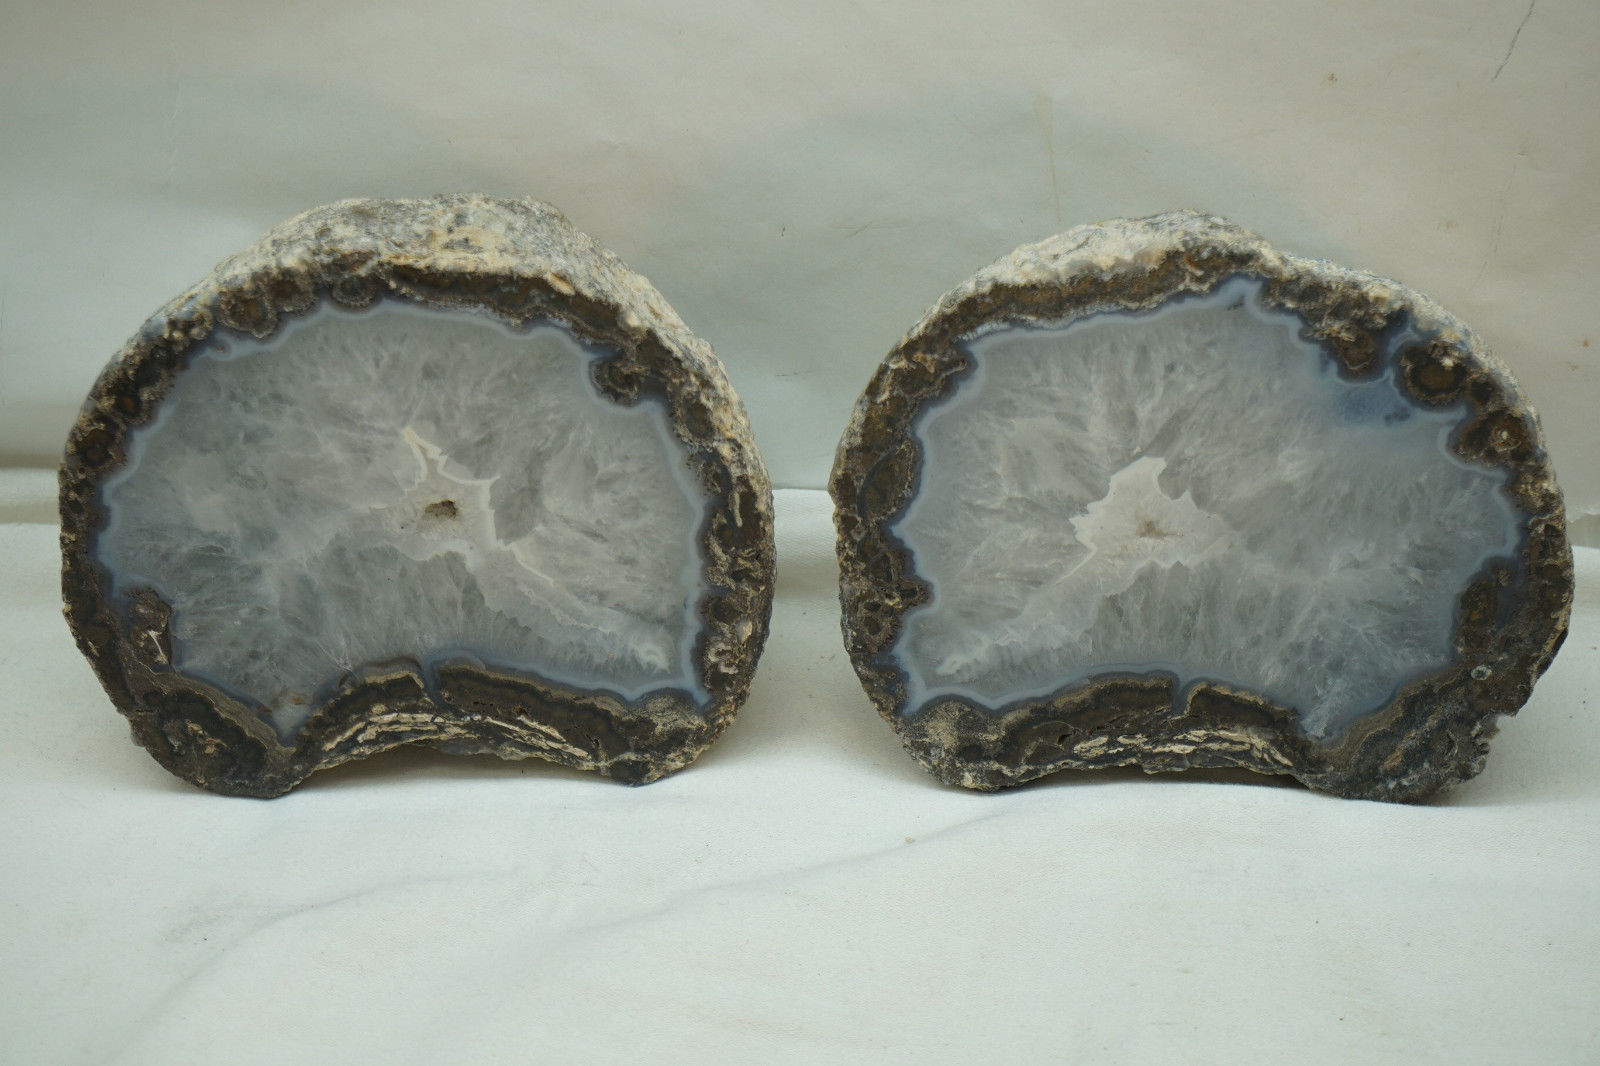 Extraordinary Geode Bookend | Cute Geode Bookends